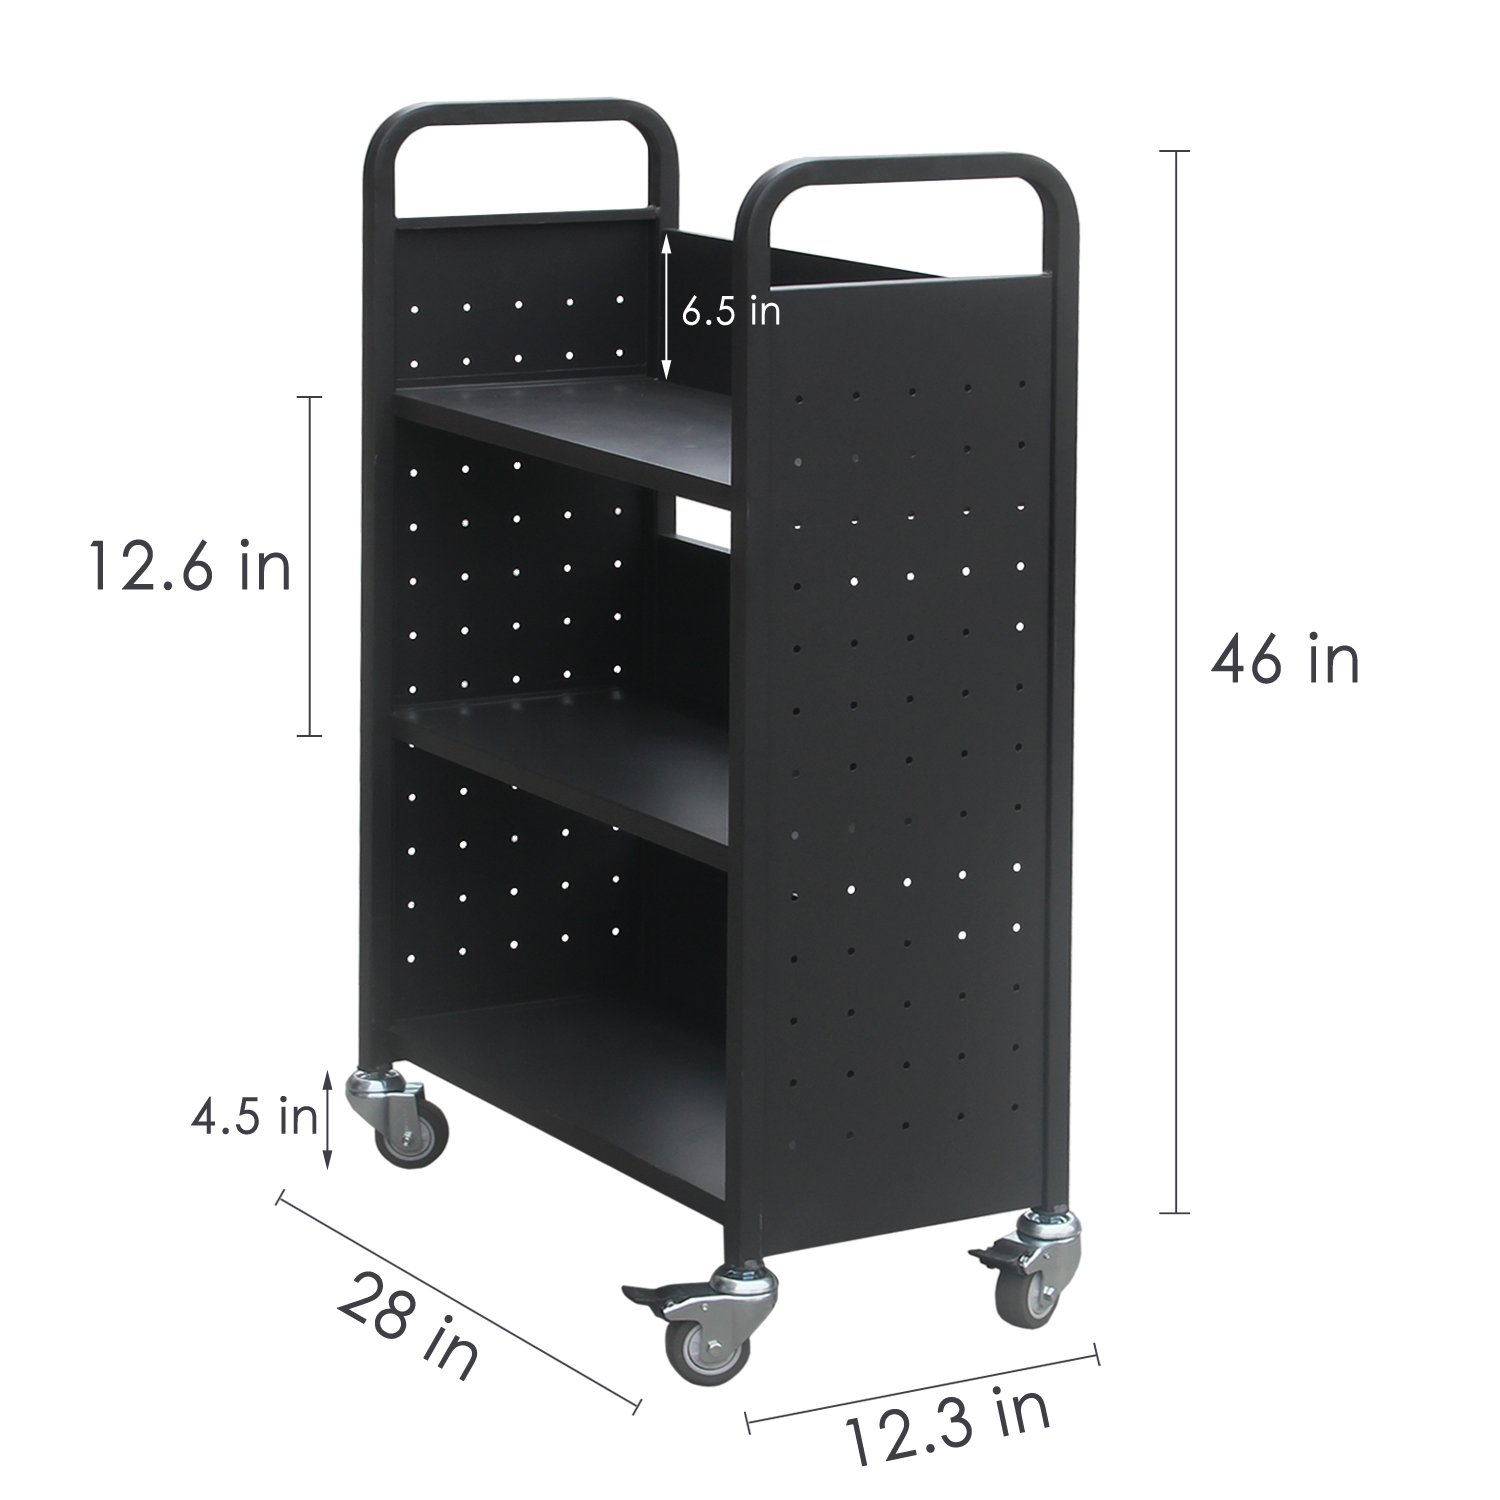 H&A Rolling Book Cart Home Office Library Book Truck Flat Storage Organizer Shelves 200lbs Capacity (Black) by Hans & Alice (Image #2)